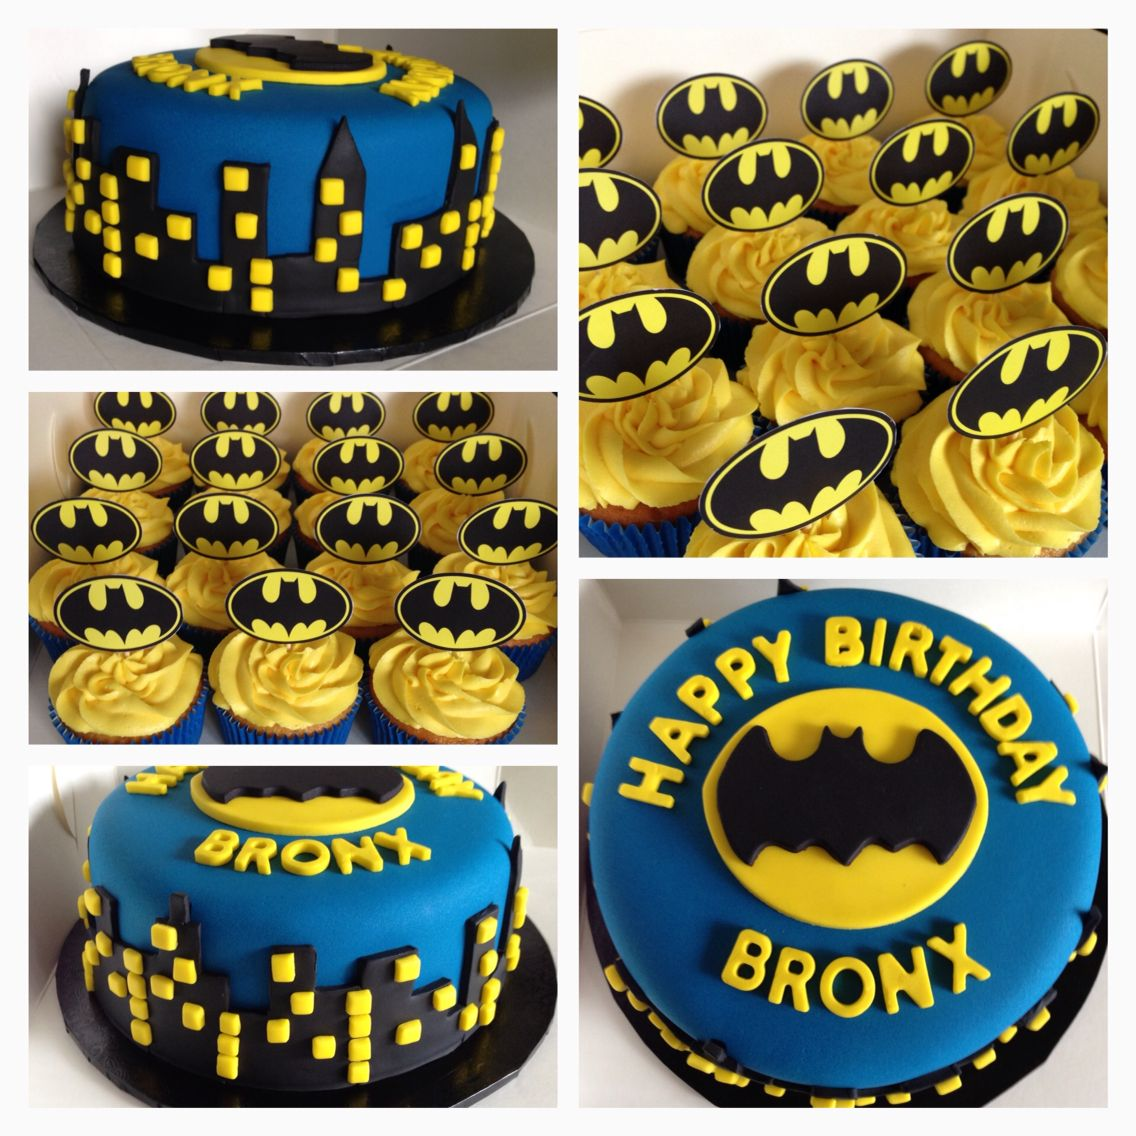 Batman Cake And Cupcakes With Images Batman Birthday Cakes